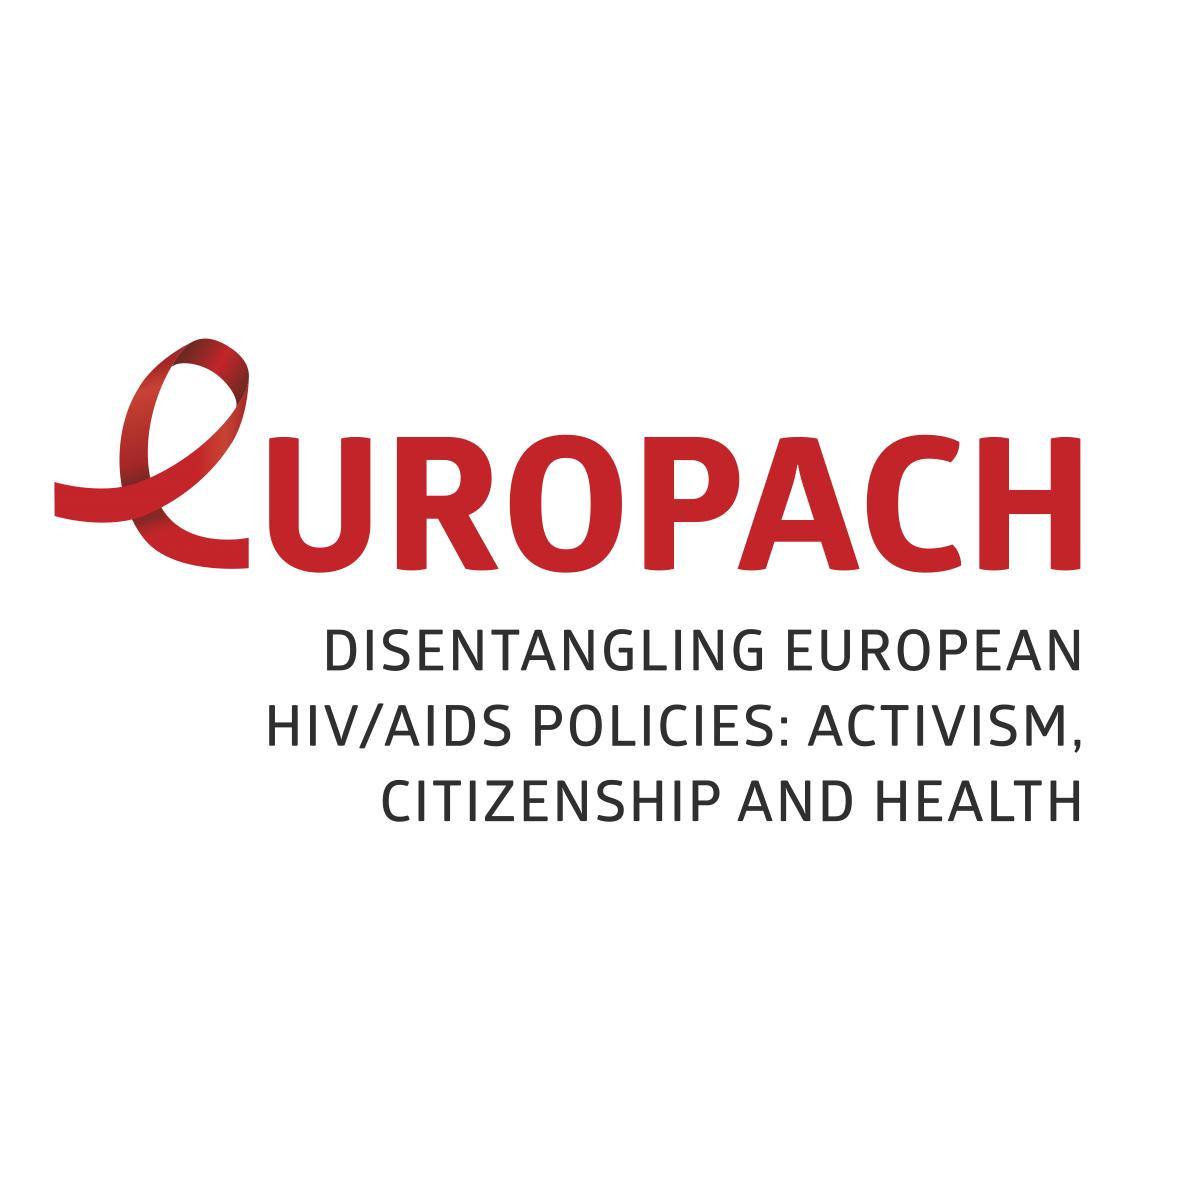 Disentangling European HIV/AIDS Policies: Activism, Citizenship and Health